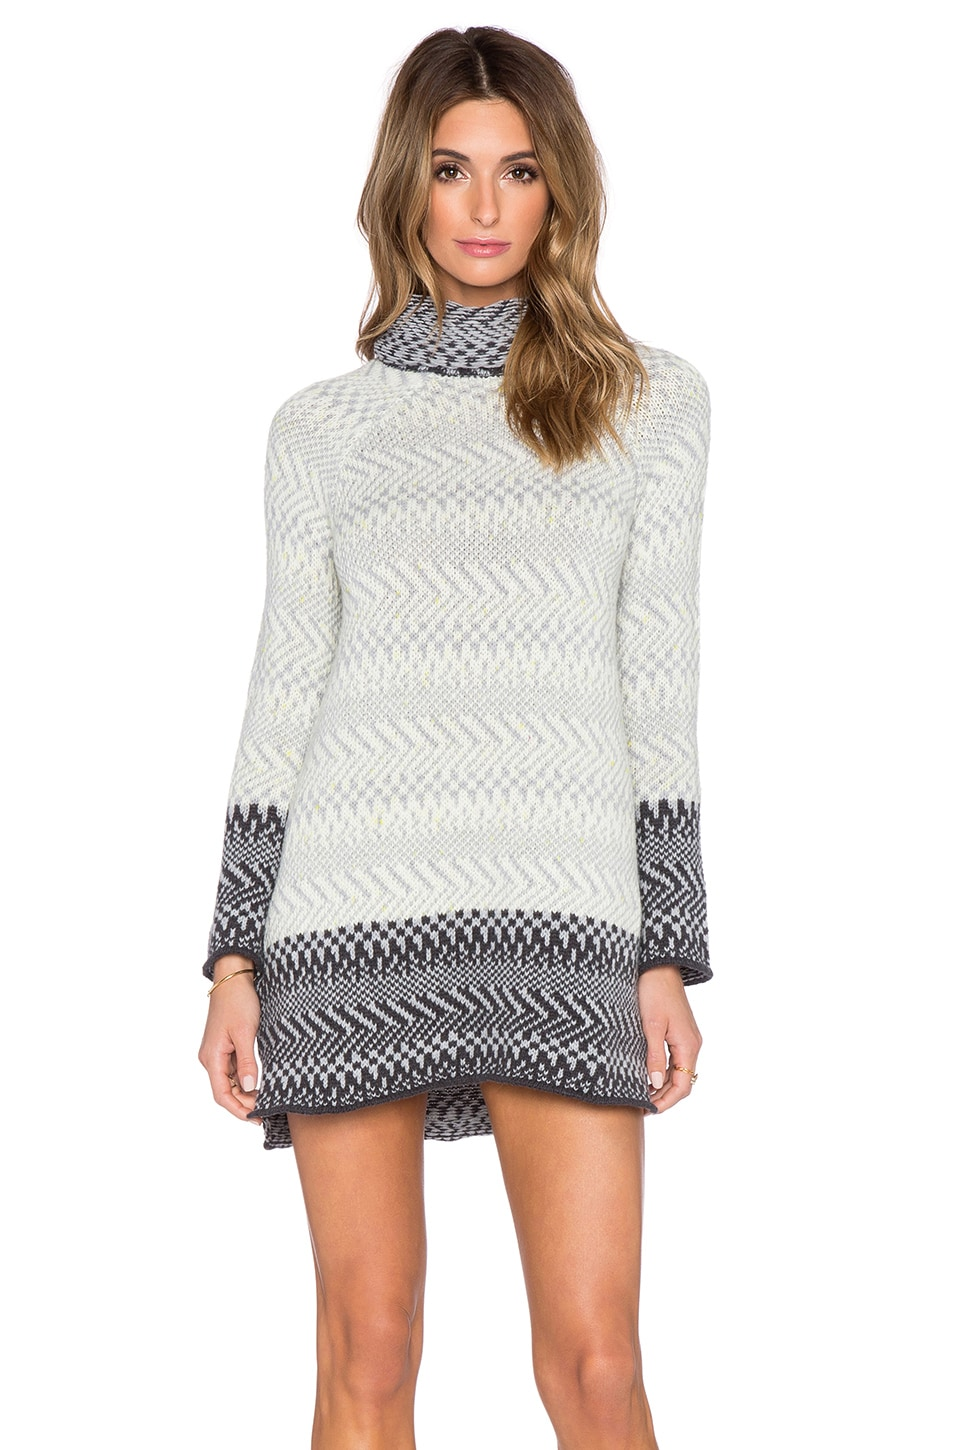 Central Park West Oslo Turtleneck Sweater in Grey